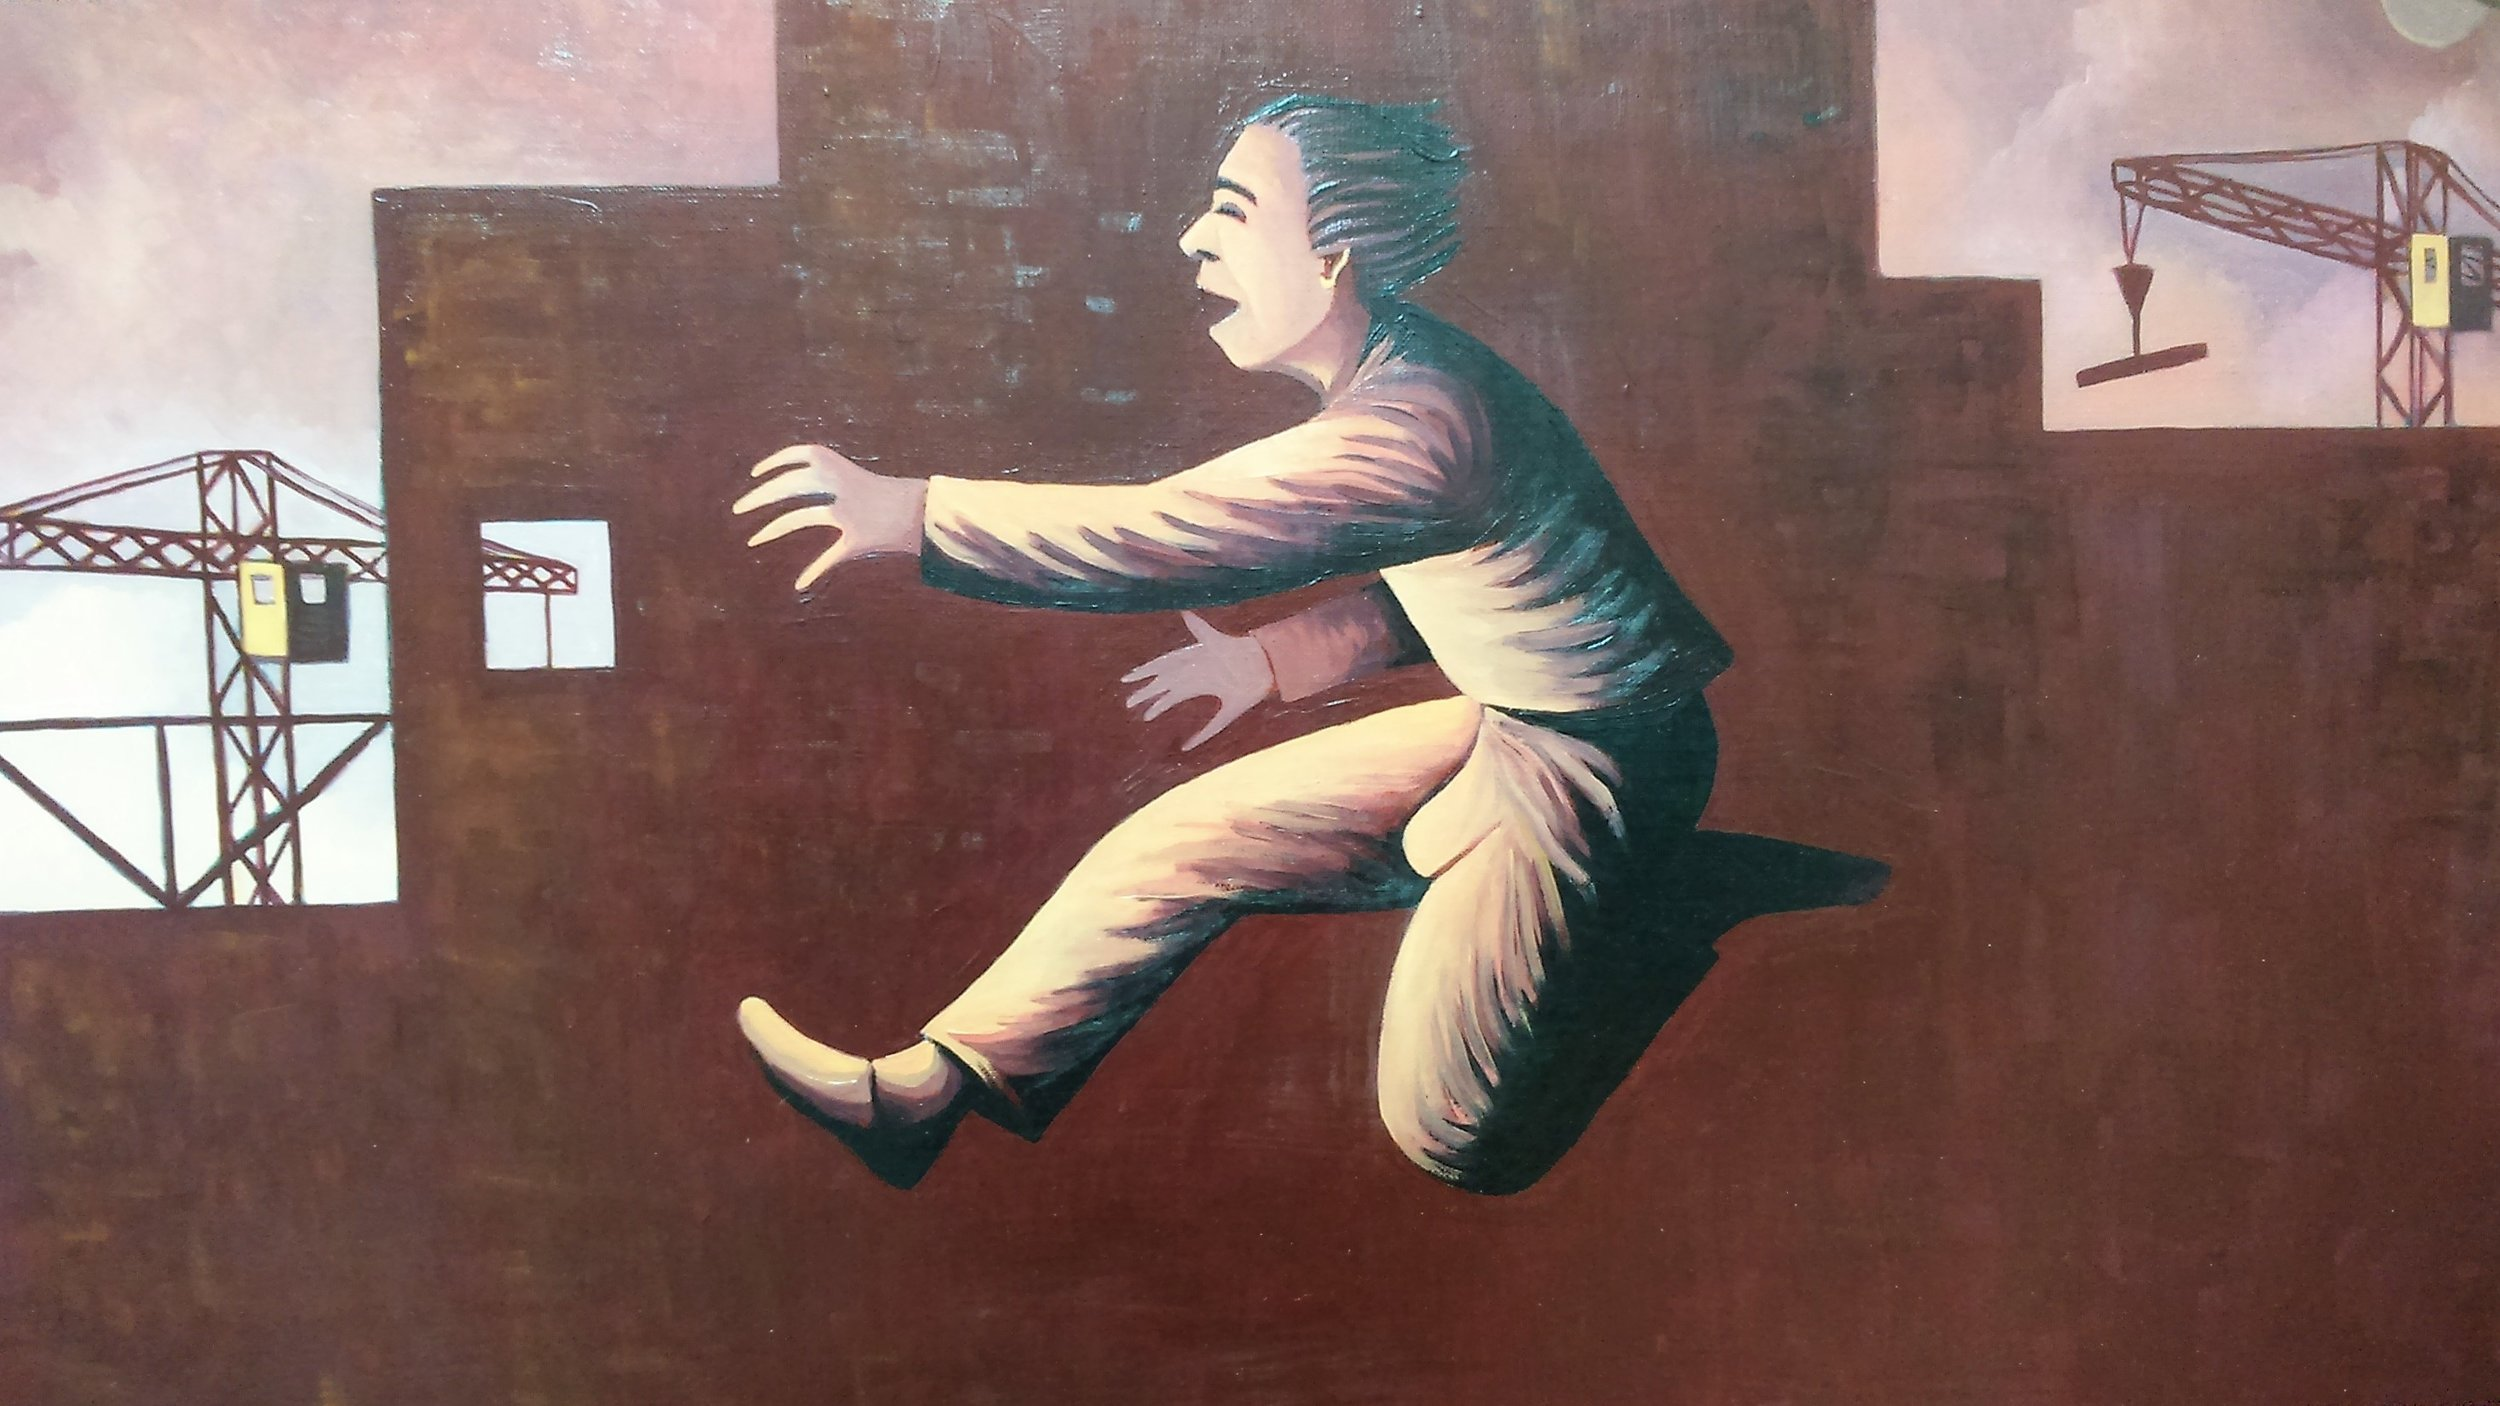 detail 2 - jumping man.jpg